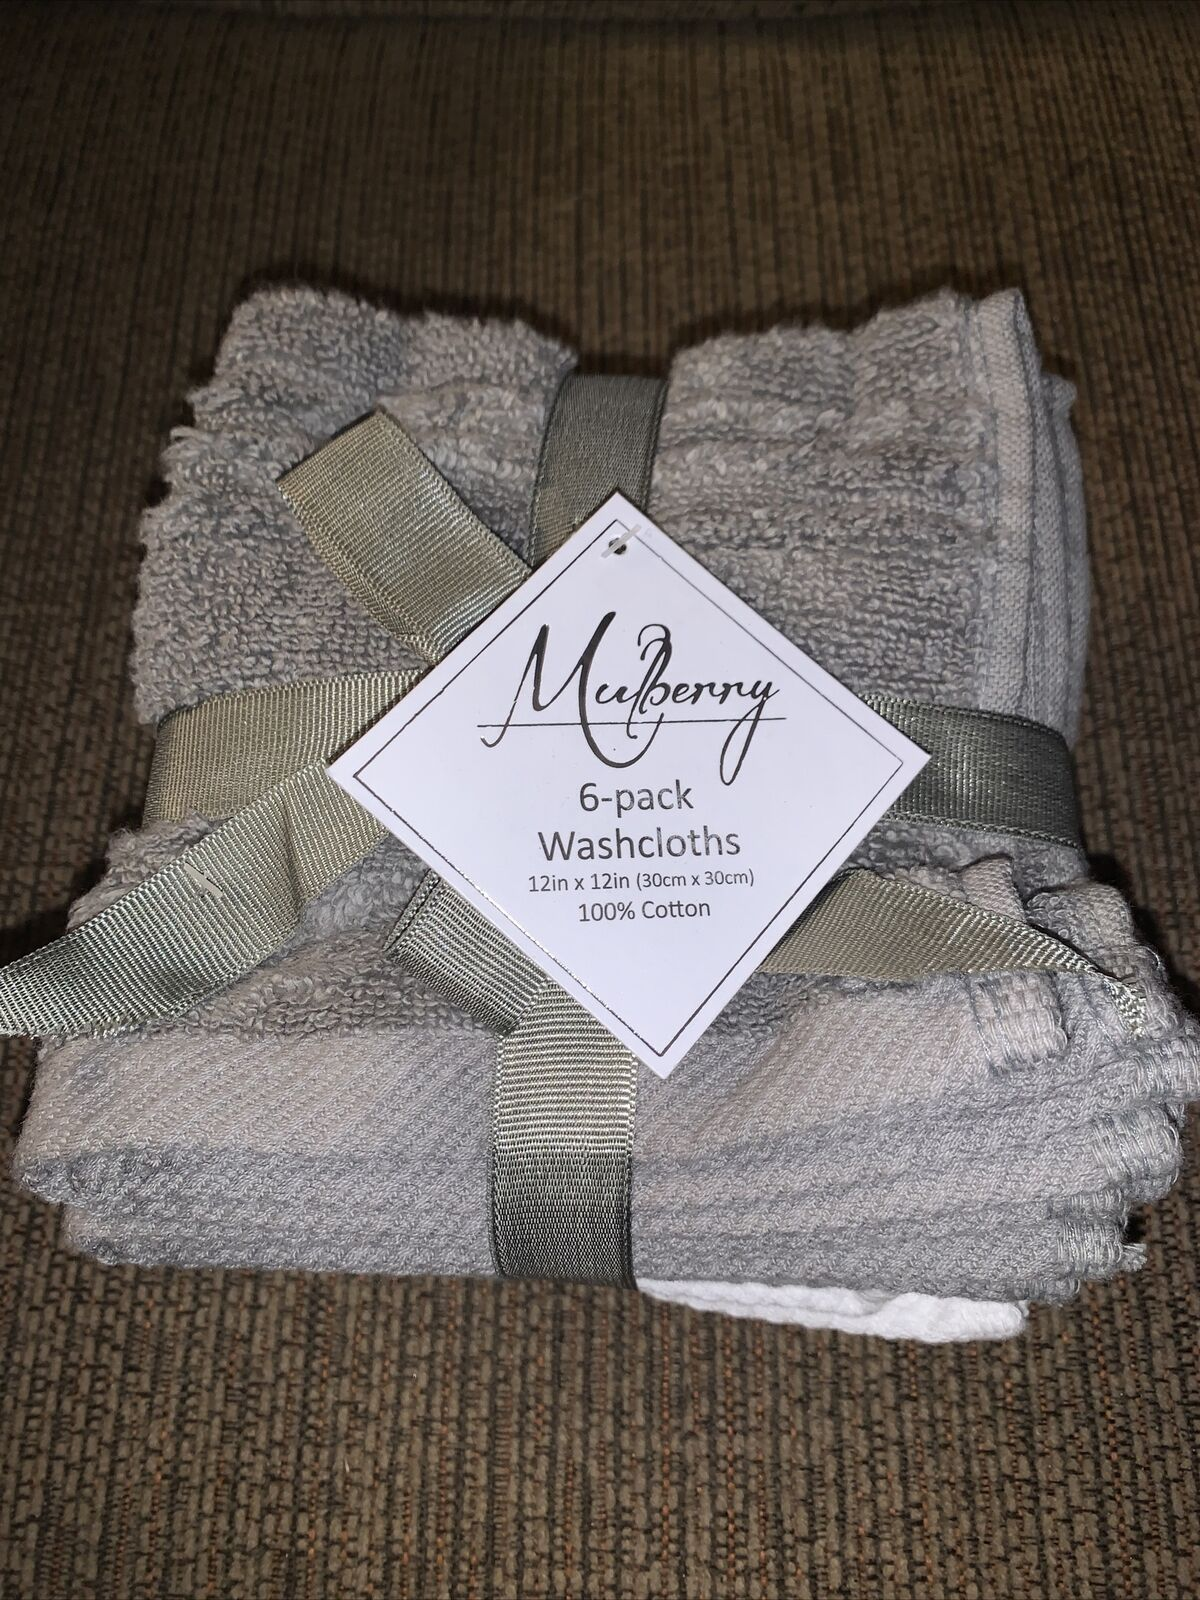 Mulberry 6-Pack Washcloths 100% Cotton